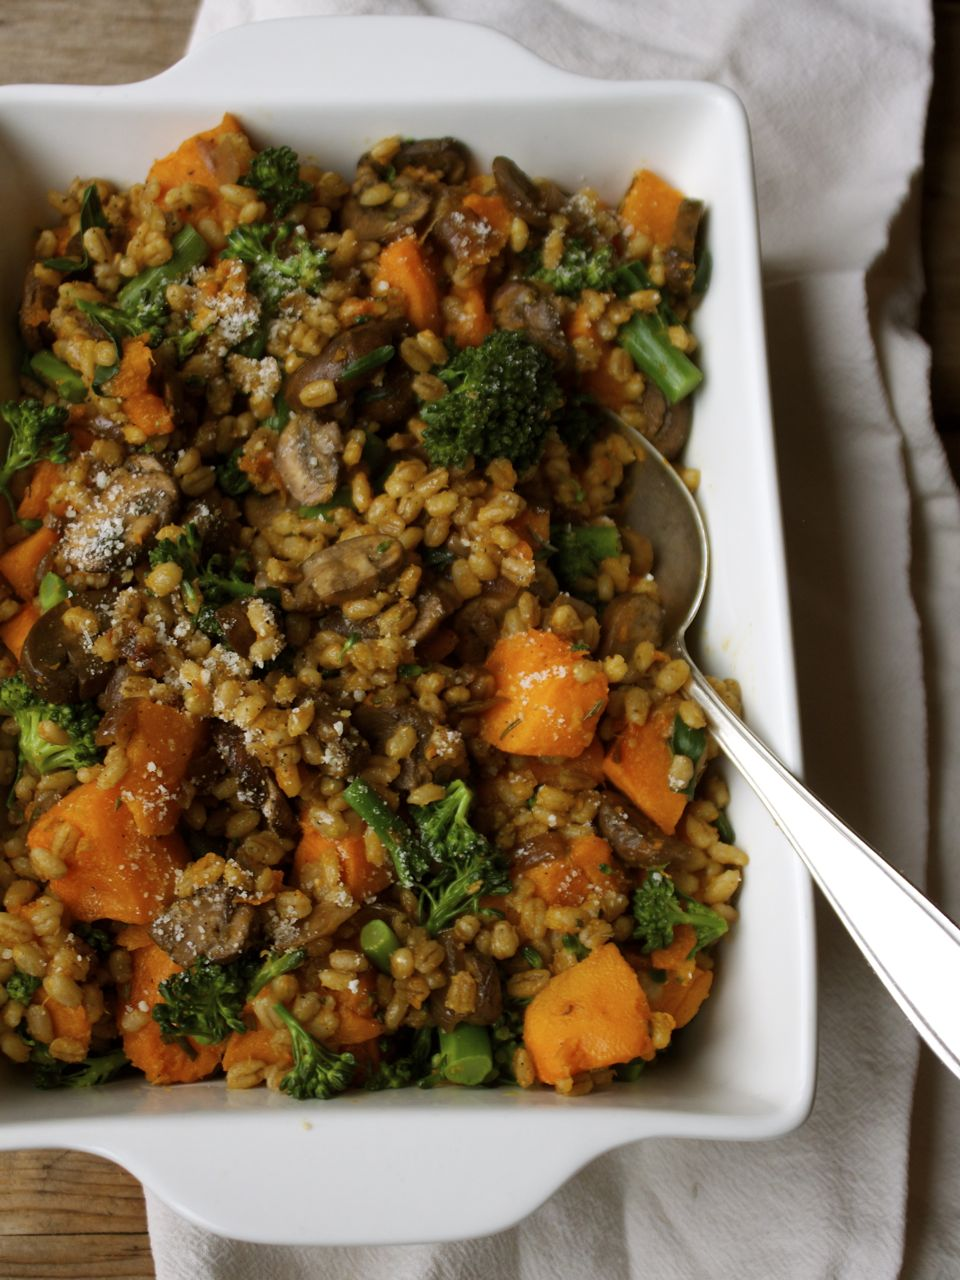 Mushroom Barley Pilaf with Roasted Squash & Rosemary